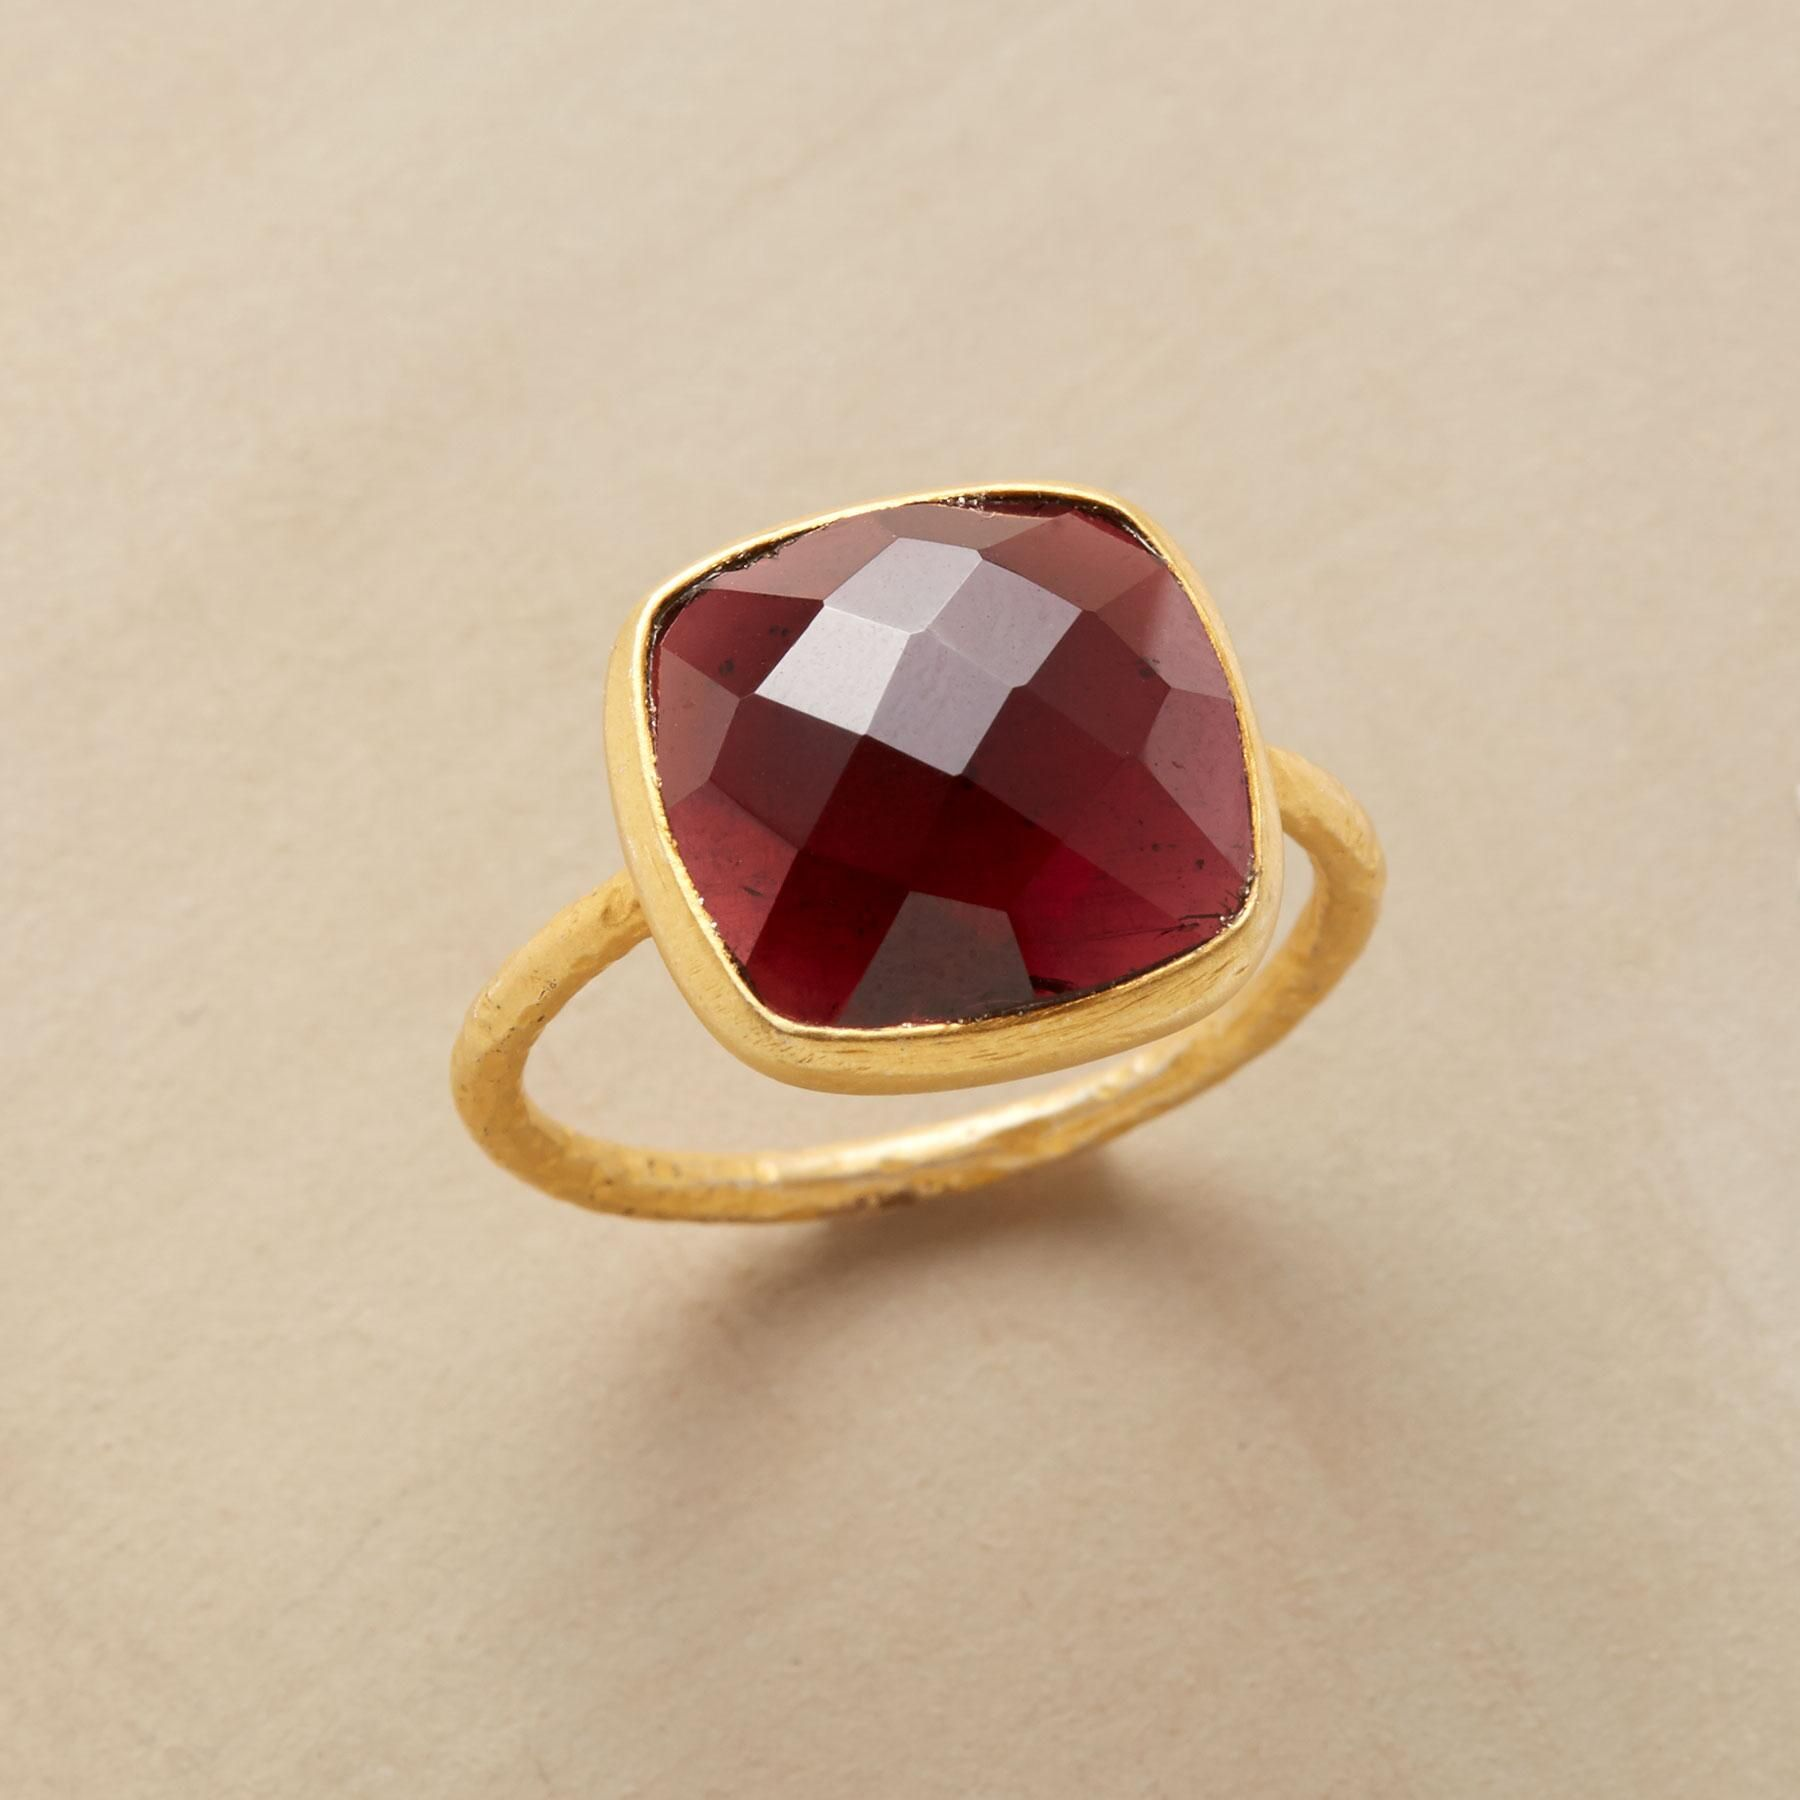 GARNET CRISSCROSS RING -- Harlequin facets crisscross garnet, the square stone set aglow by 22kt matte vermeil. Handmade with a slender, textured band; whole sizes 5 to 10. This ring is running a bit large, half sizes should order down to the next full size.